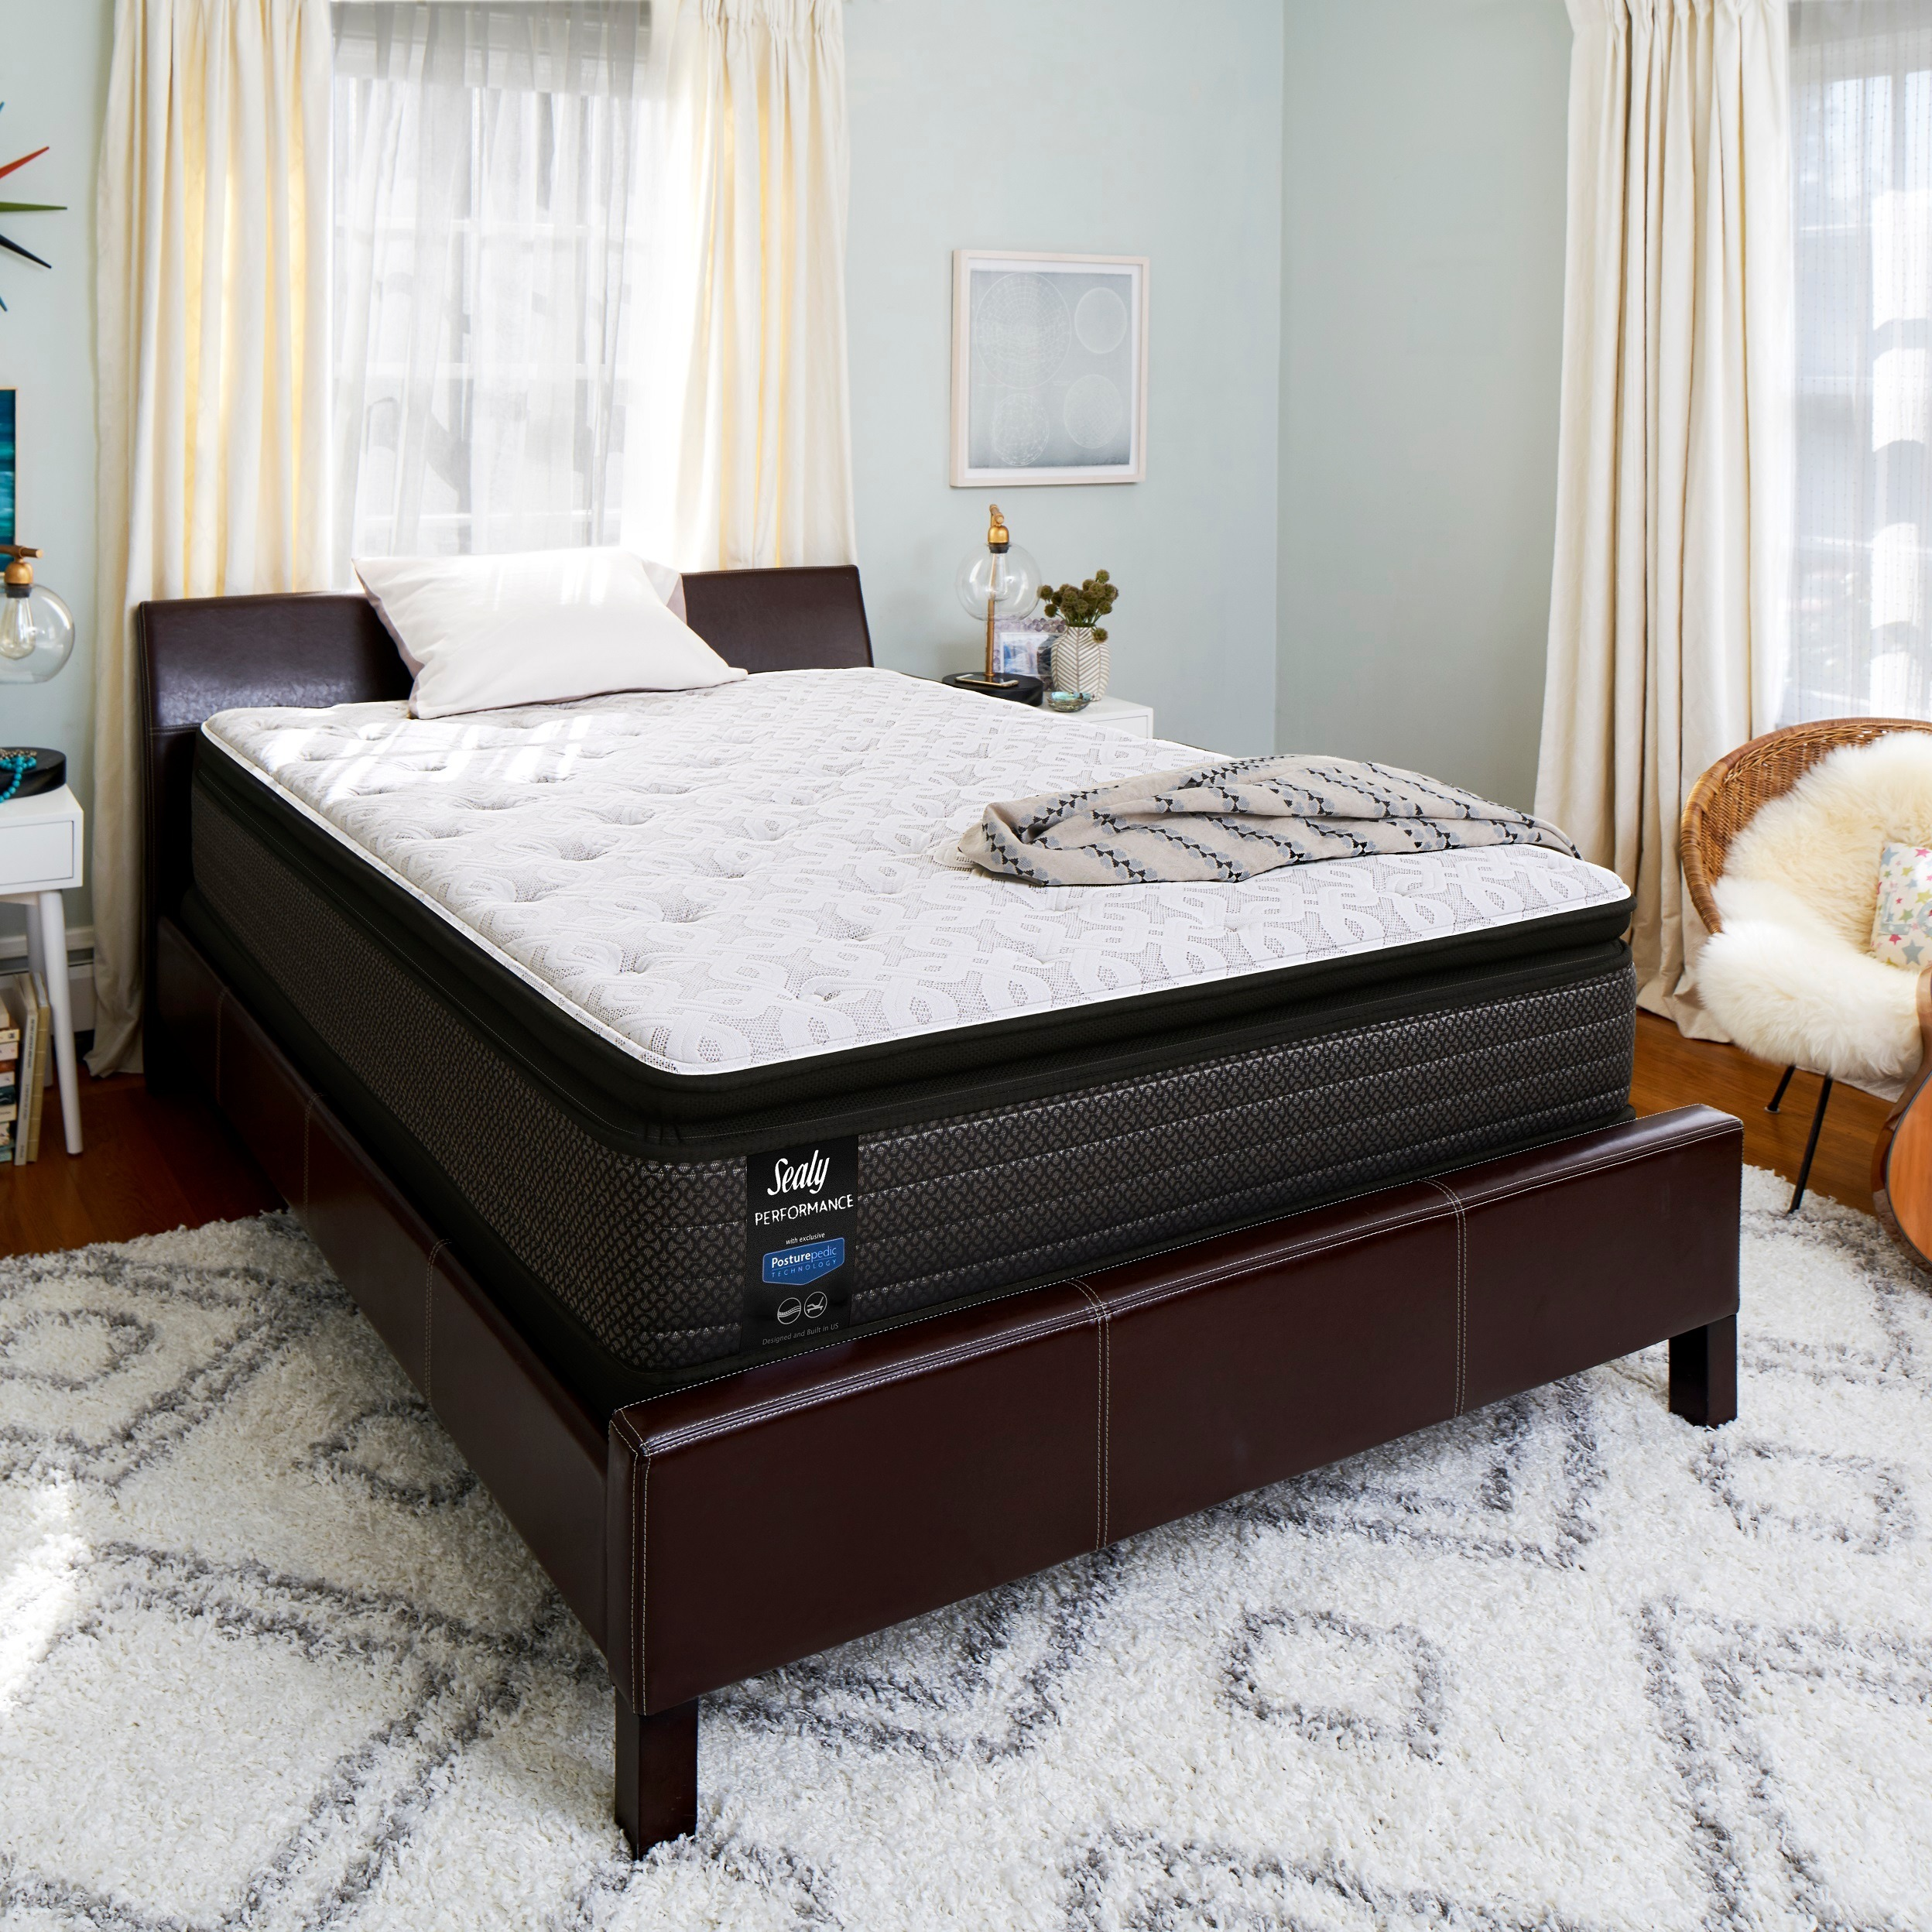 double adjustable san firm pillowtop coniston on disassembly and archived mattress astonishing pillows frames plush parts size stearns box bed of vs tempur foster feet benito sealy top in furniture pillow large frame posturepedic beds king full outlet sheets mirrorform brand